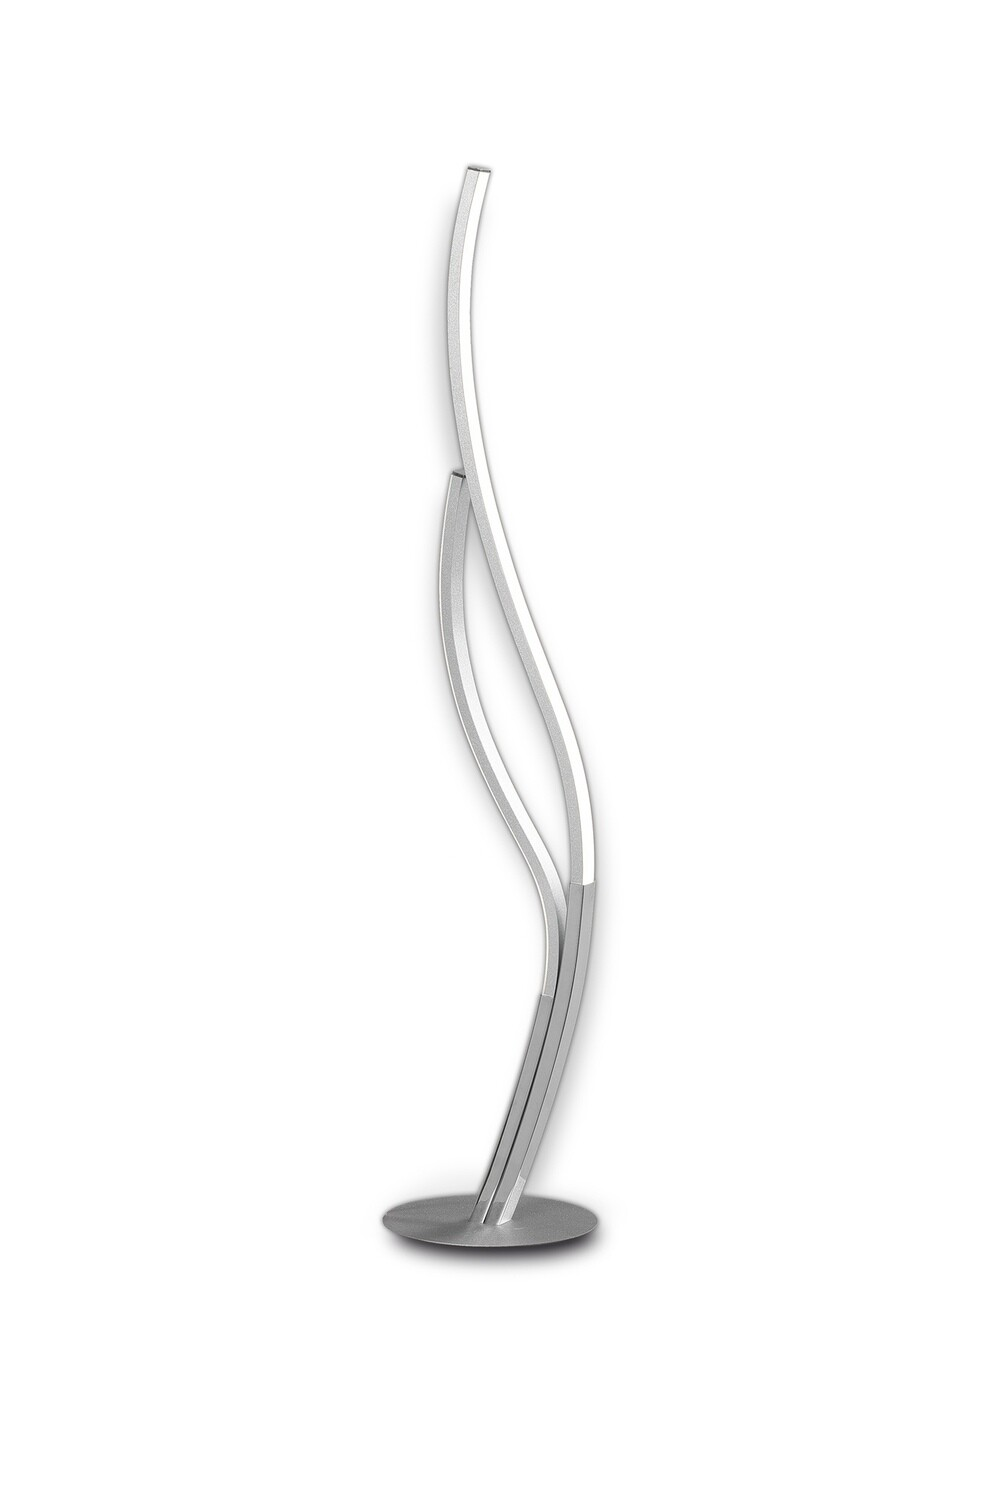 Corinto Table Lamp 84cm, 12W LED, 3000k, 960lm, Silver Chrome, Touch Dimmer